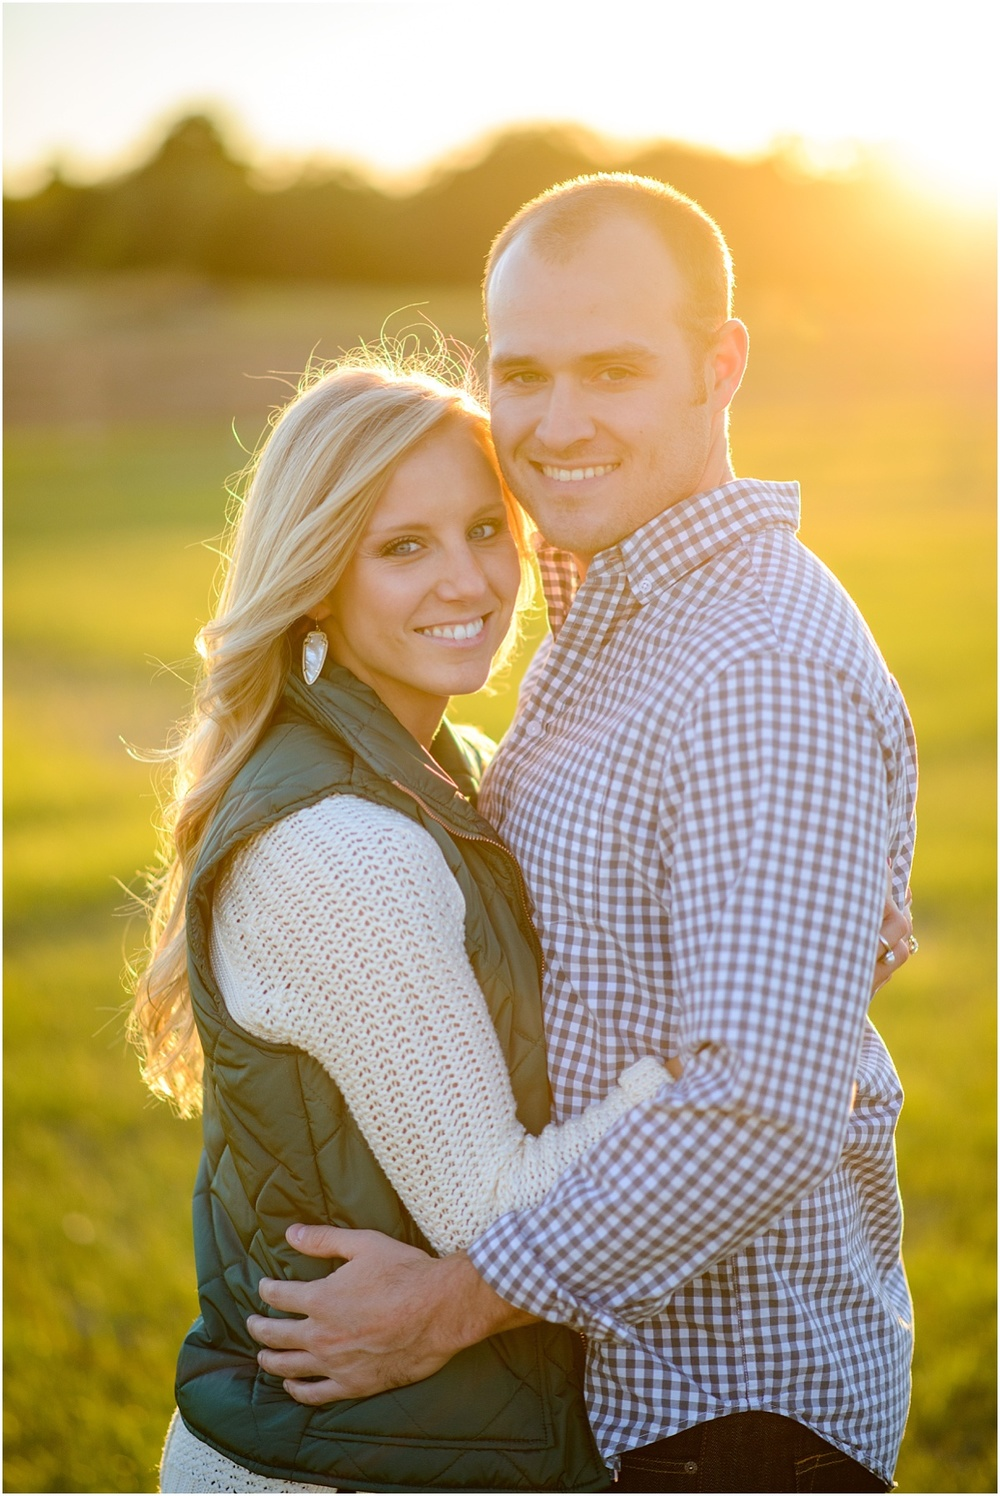 Greg Smit Photography Nashville wedding photographer Harlinsdale Farm Engagement Franklin TN_0022